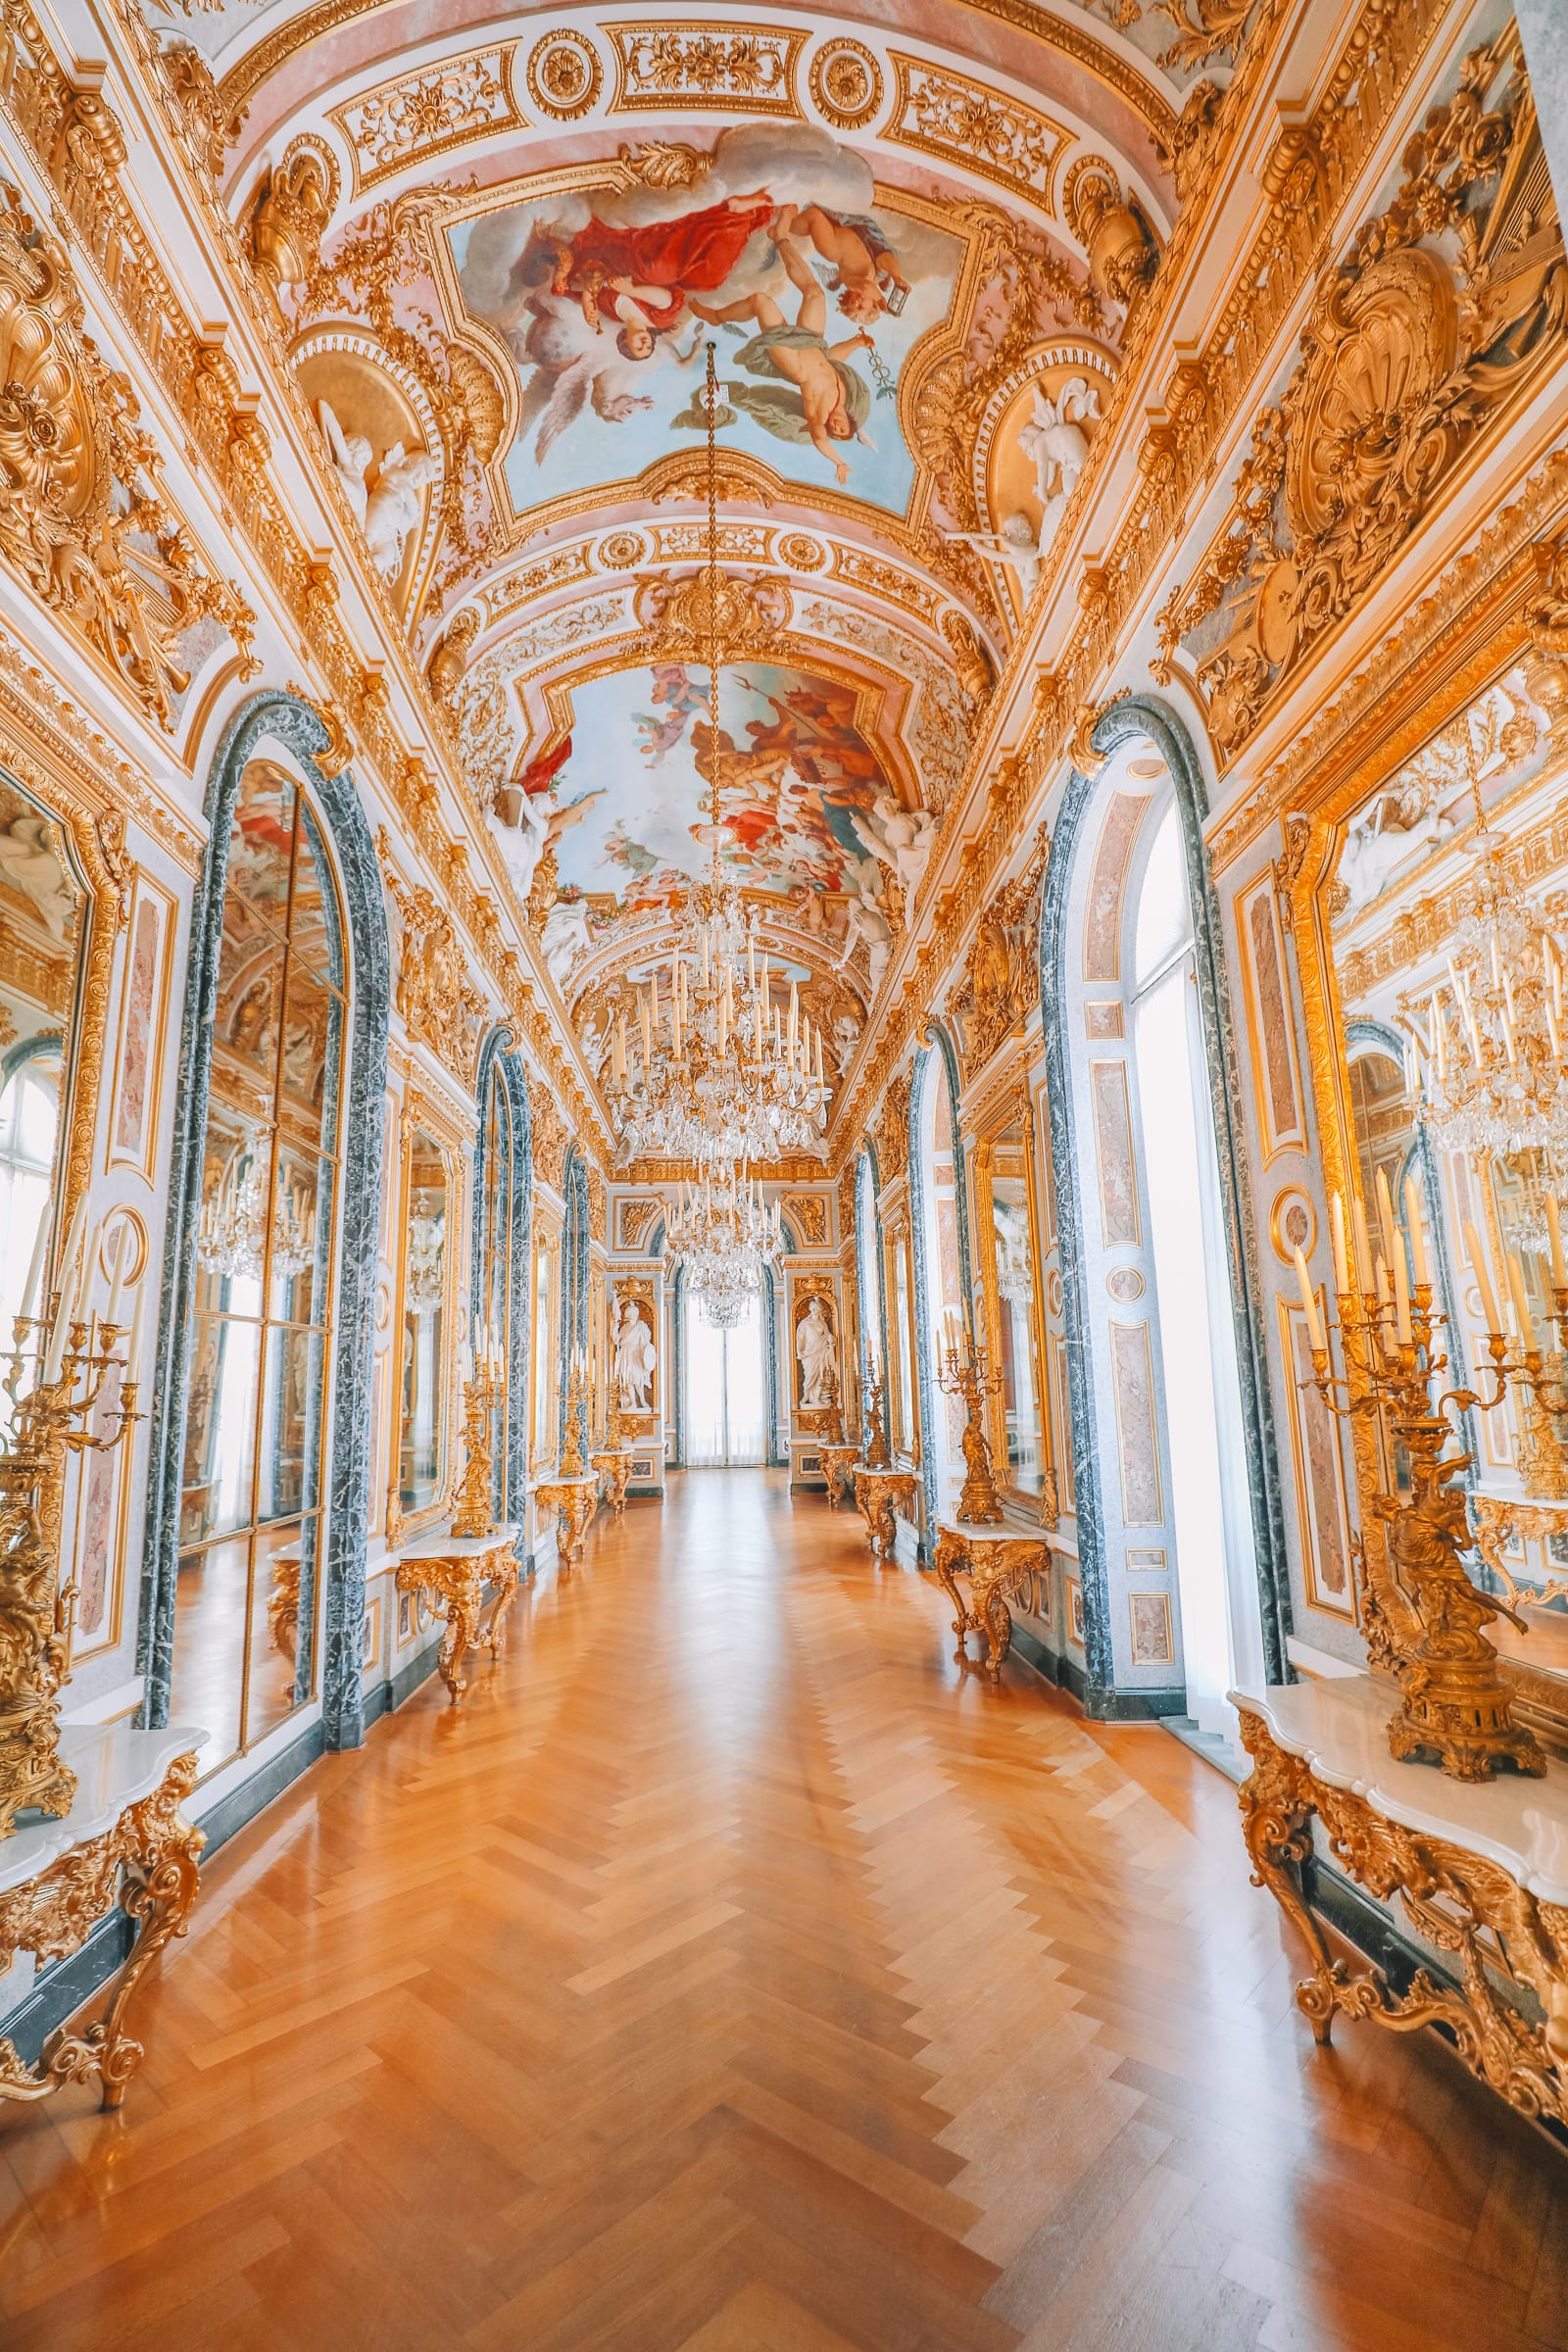 Herrenchiemsee Palace - One Of The Most Beautiful And Grandest Palaces In Germany You Have To Visit! (56)